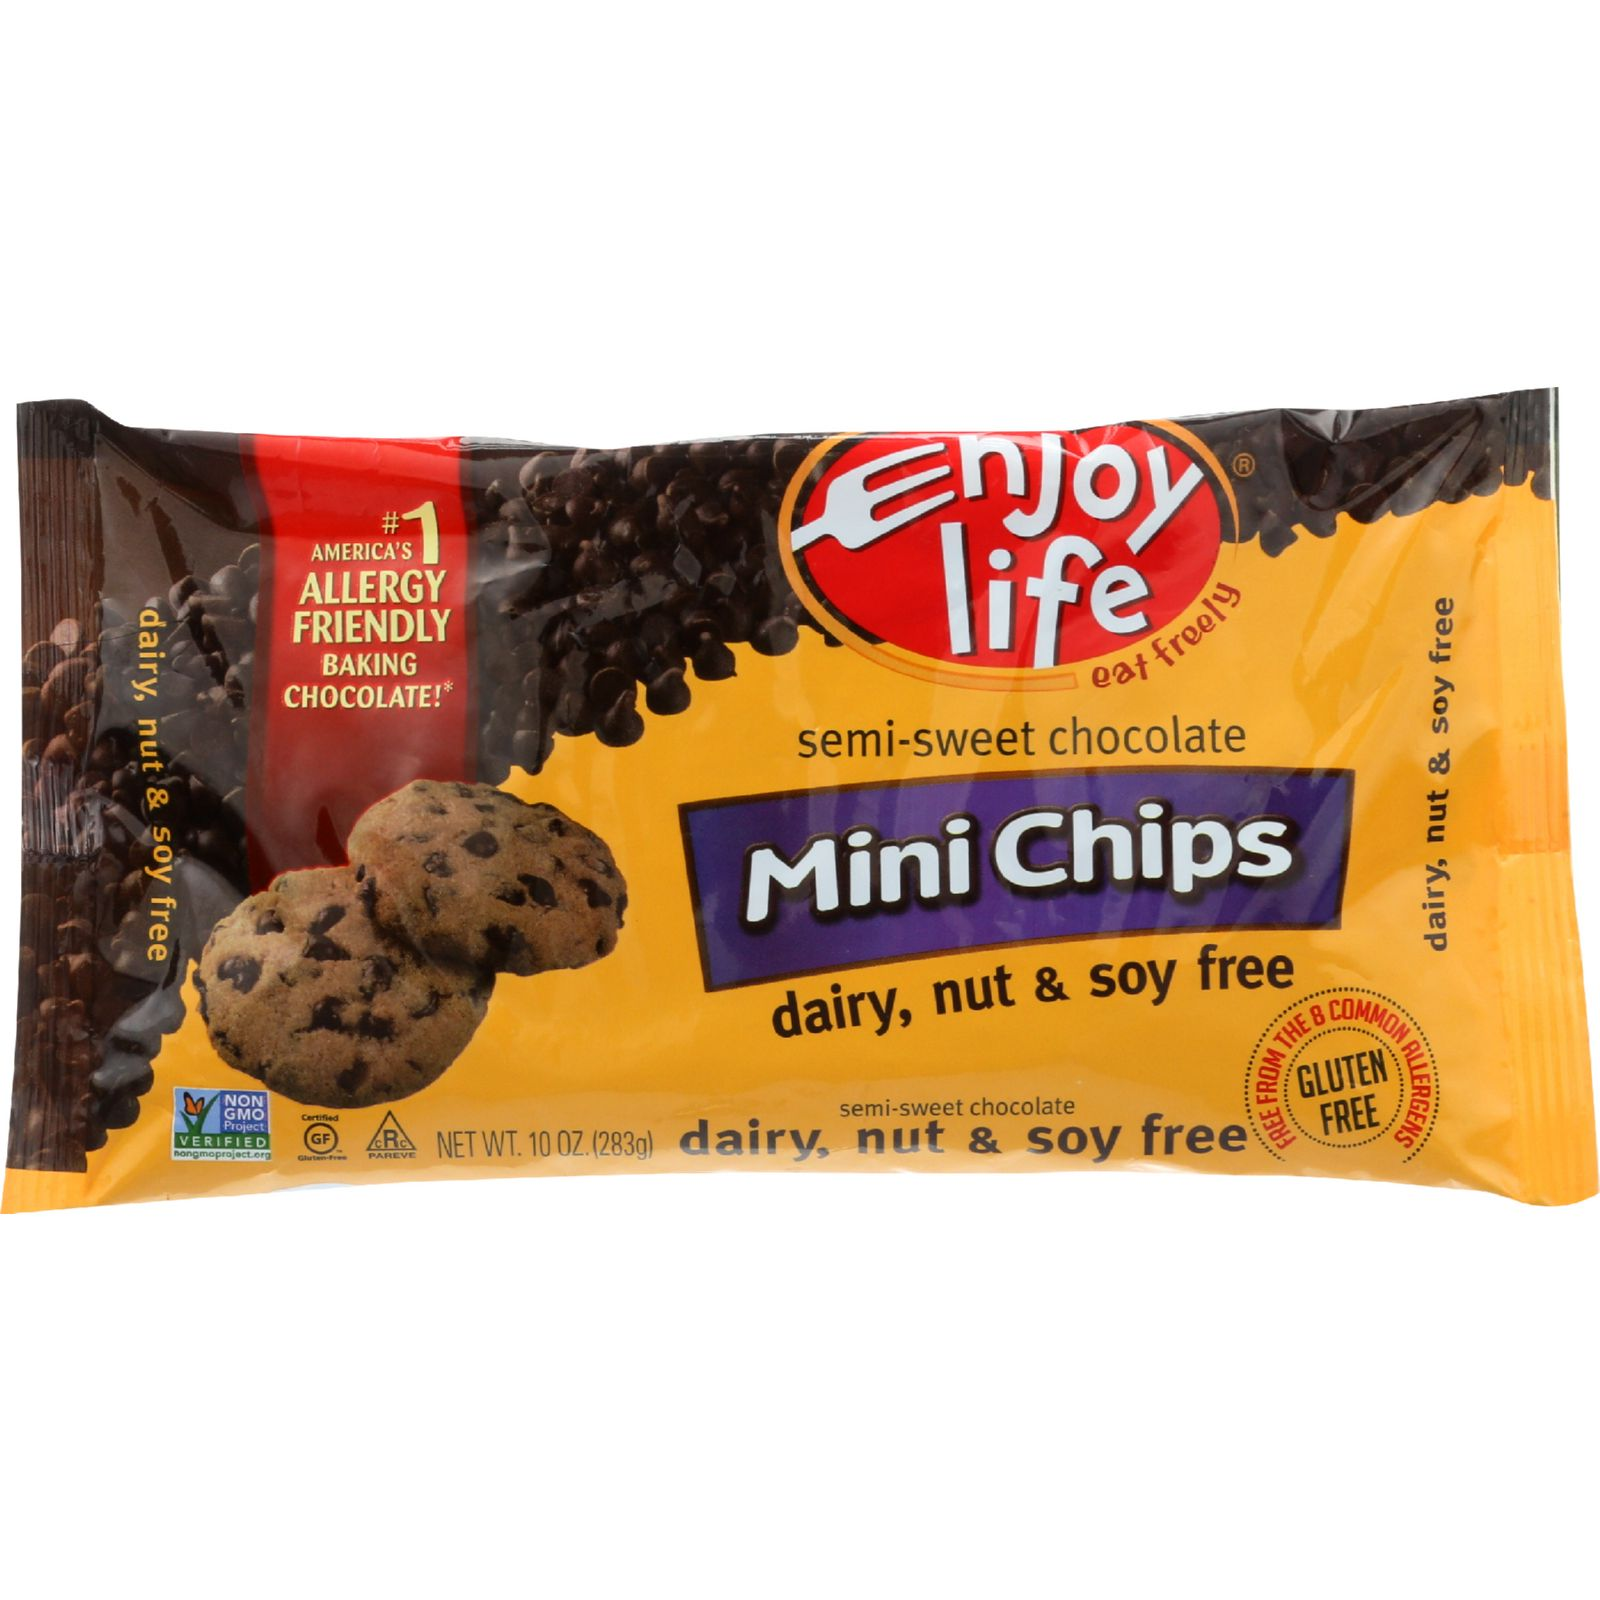 Enjoy Life Baking Chocolate Mini Chips Semi-Sweet Gluten Free 10 oz case of 12 by